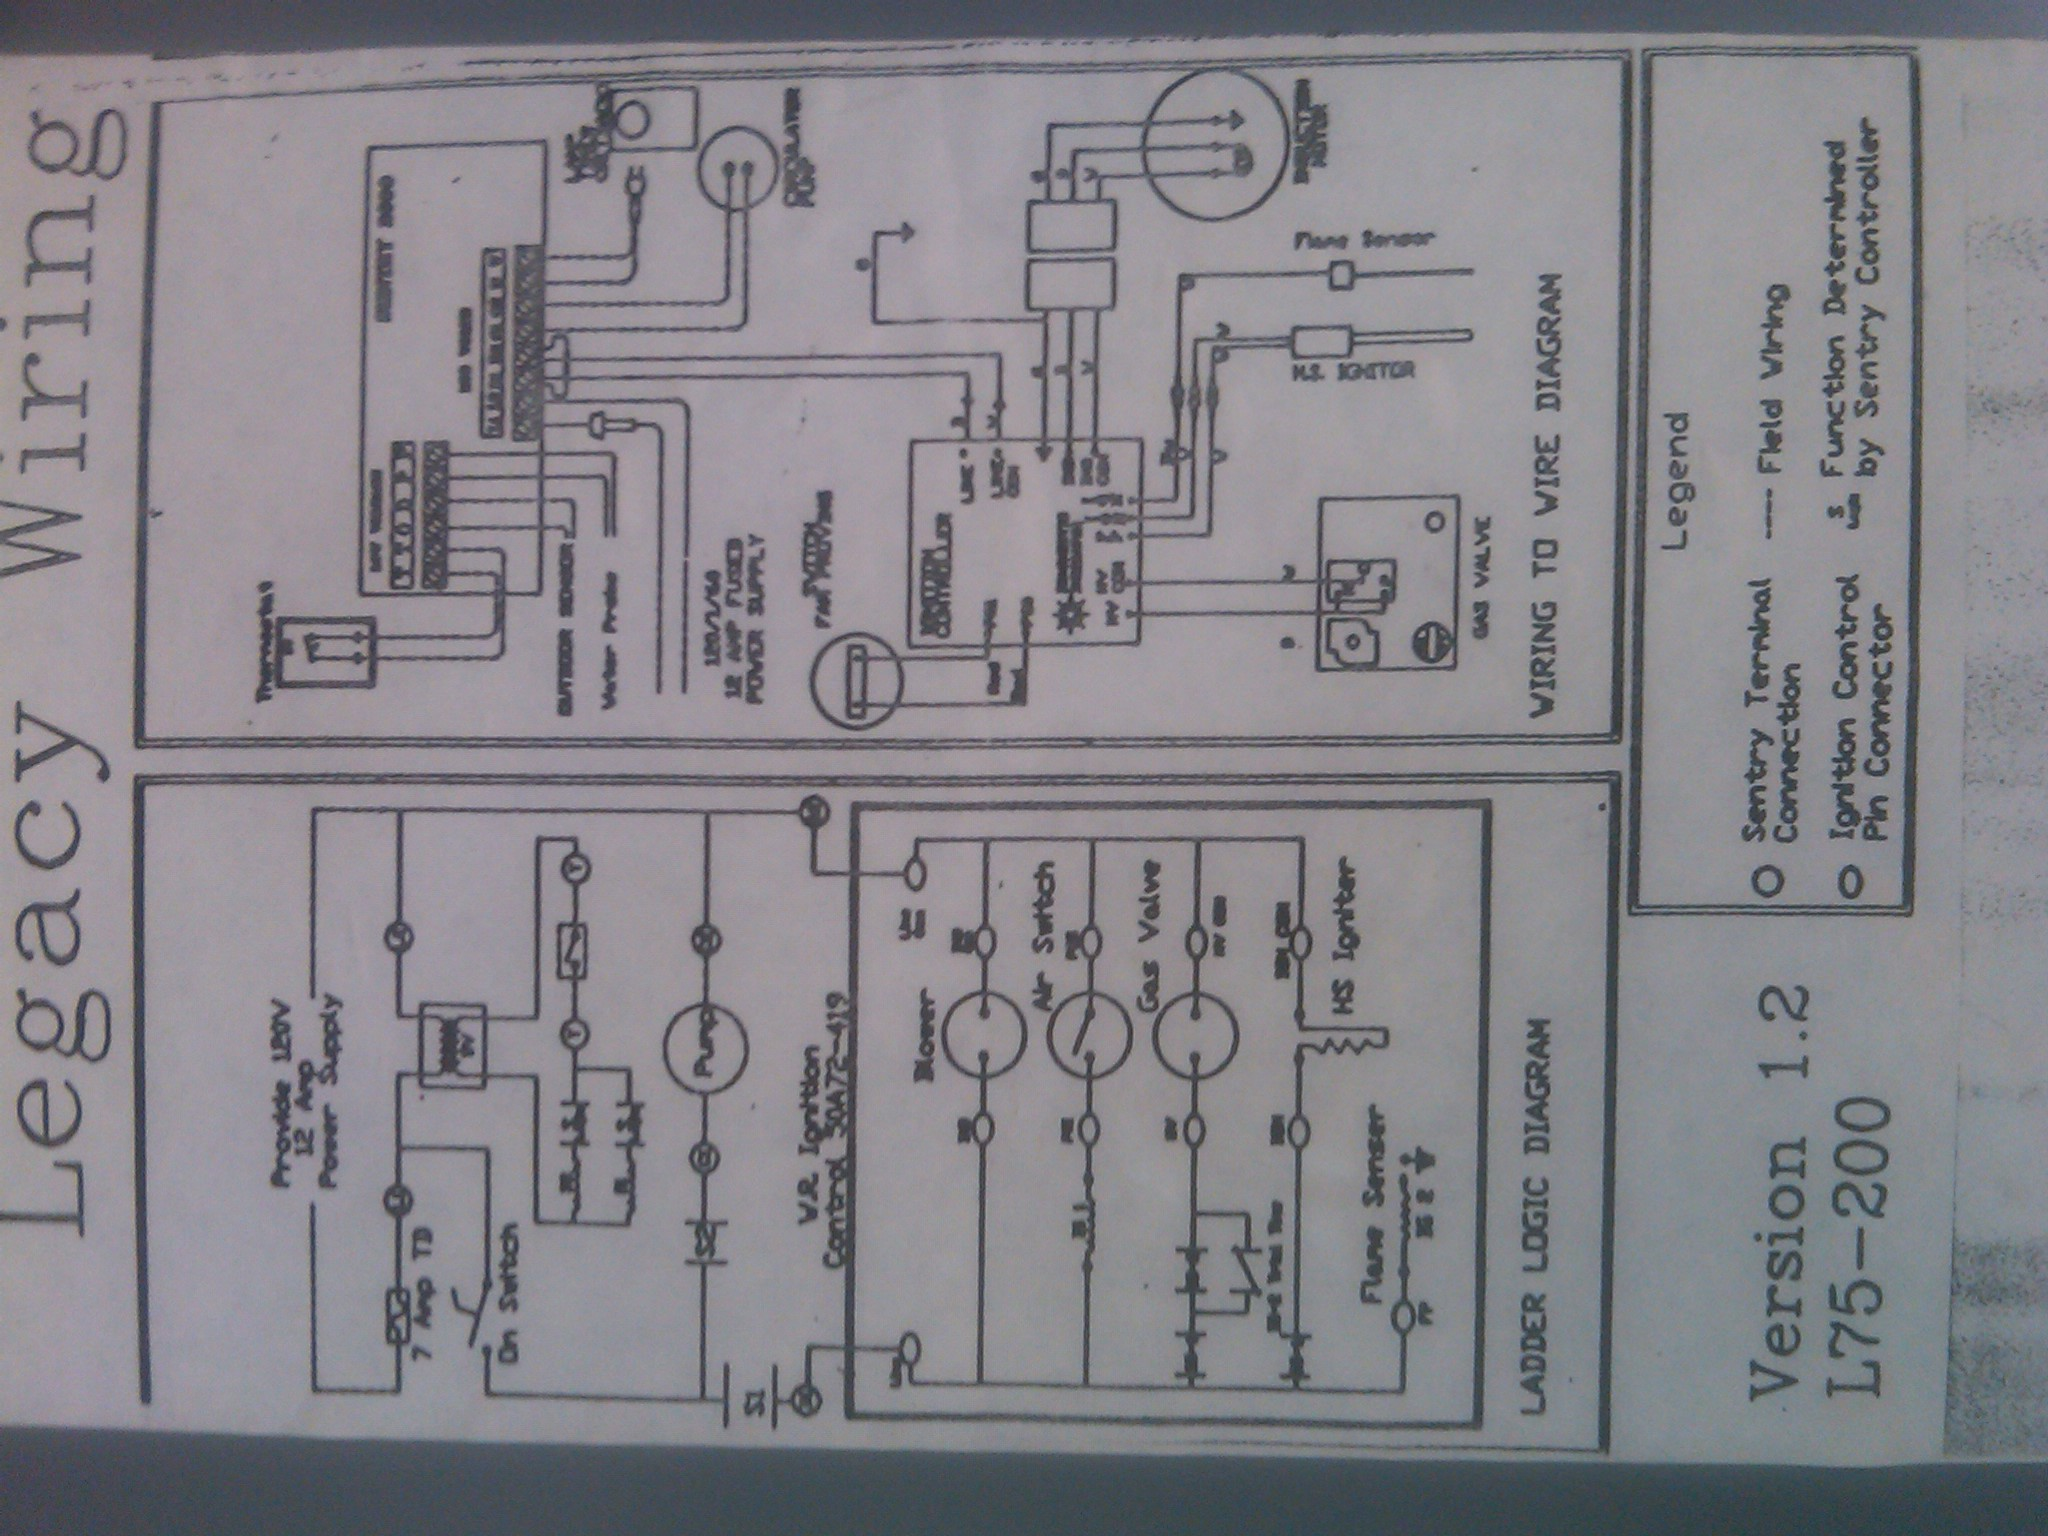 Wiring Diagram For Boilers